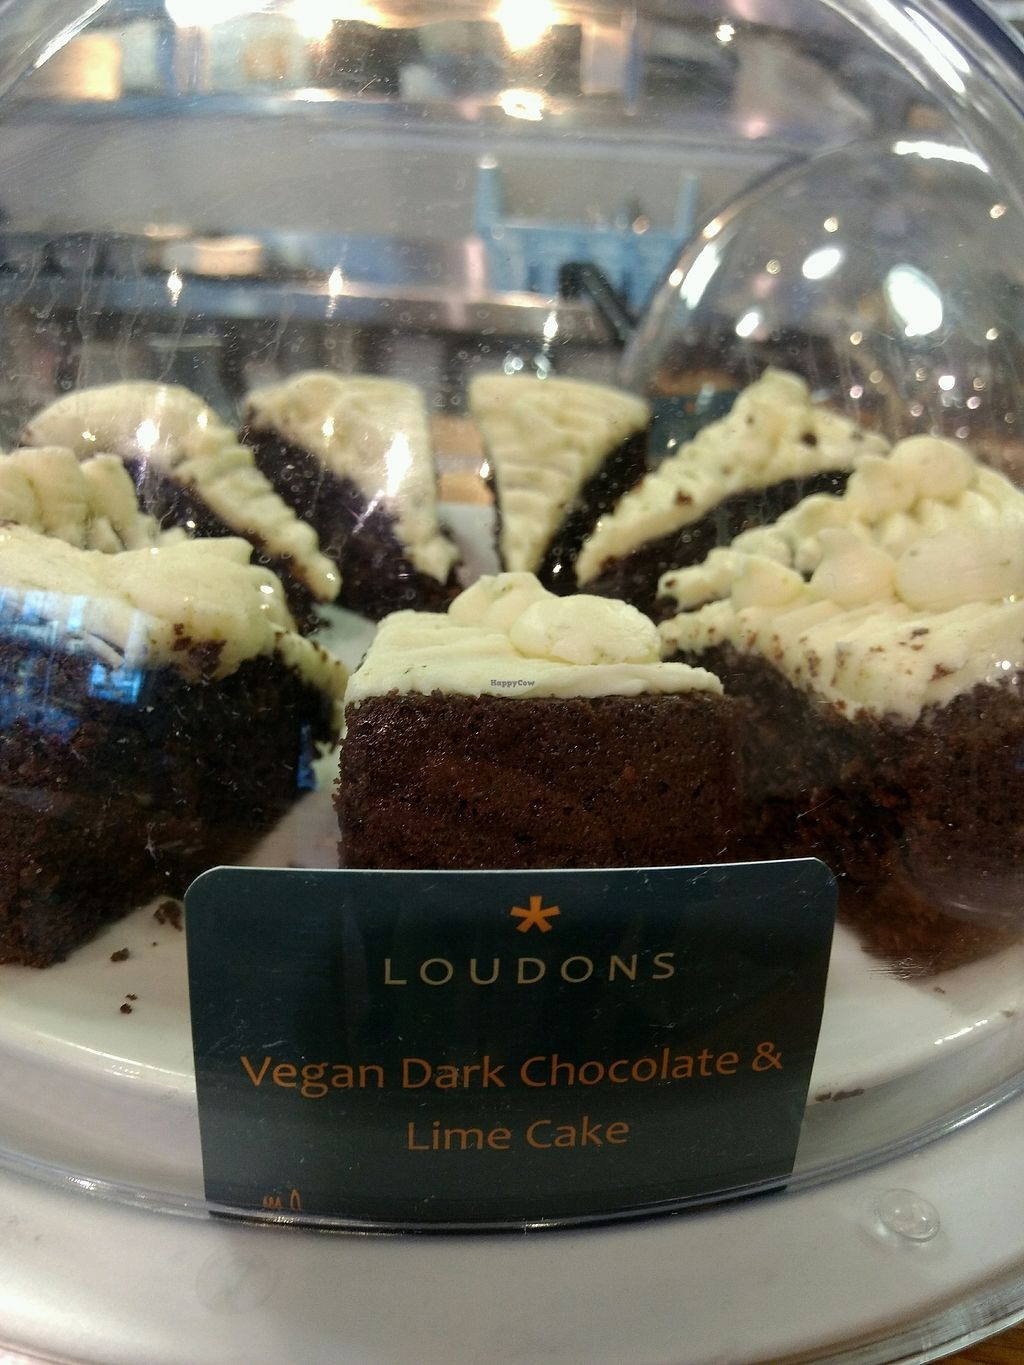 """Photo of Loudons Cafe and Bakery  by <a href=""""/members/profile/craigmc"""">craigmc</a> <br/>cake <br/> November 24, 2017  - <a href='/contact/abuse/image/105784/328659'>Report</a>"""